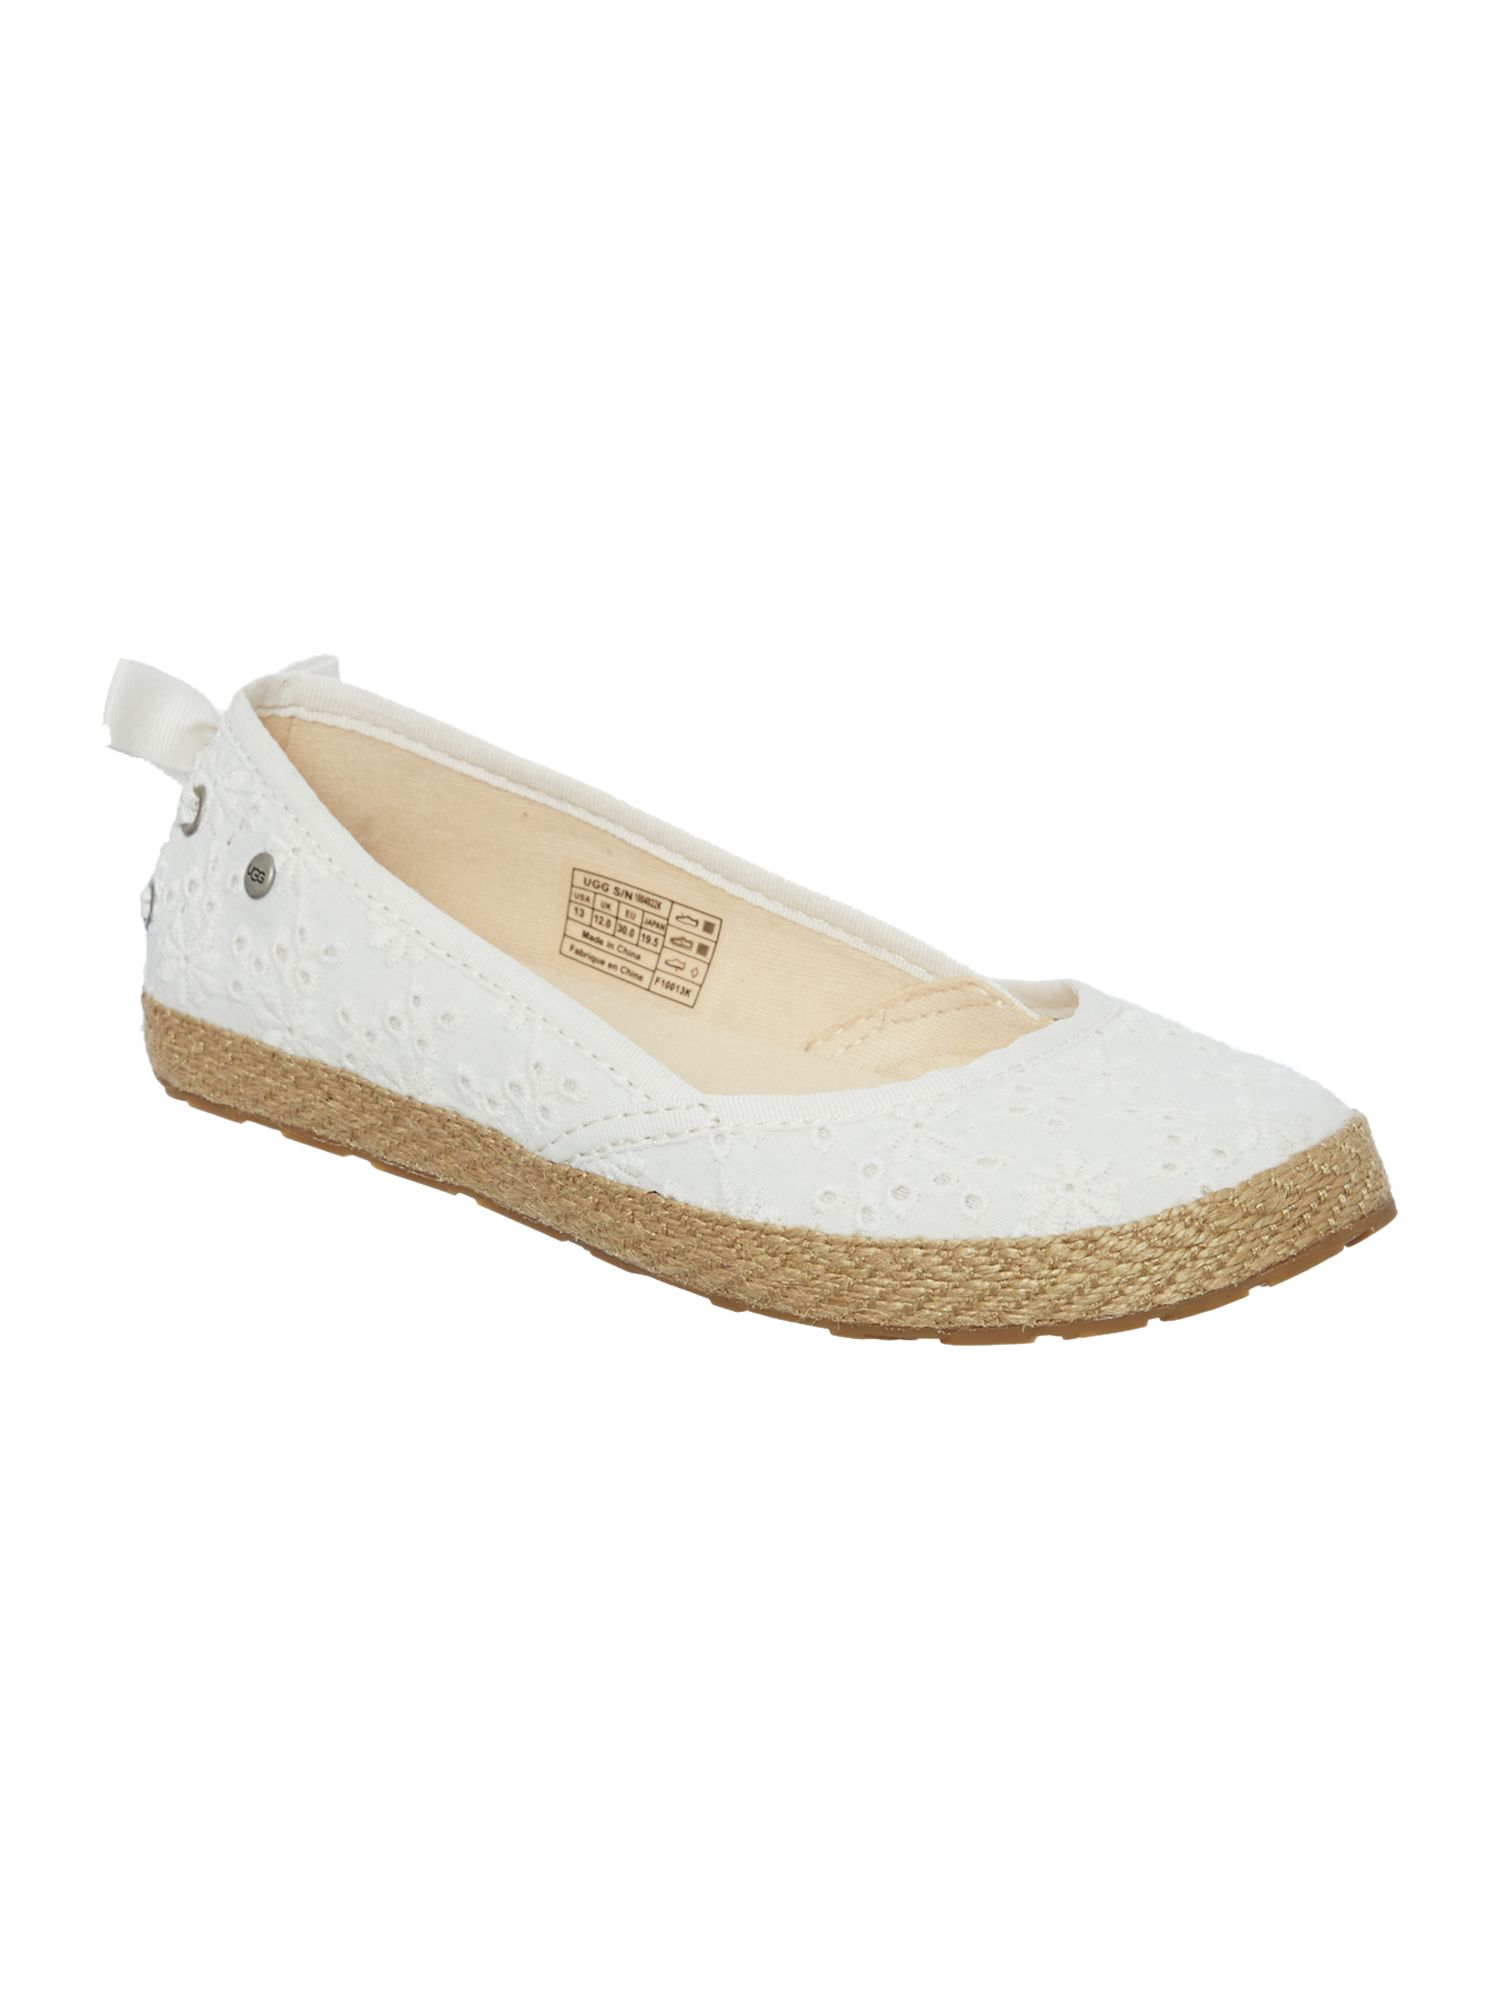 Girls embroidered espadrilles